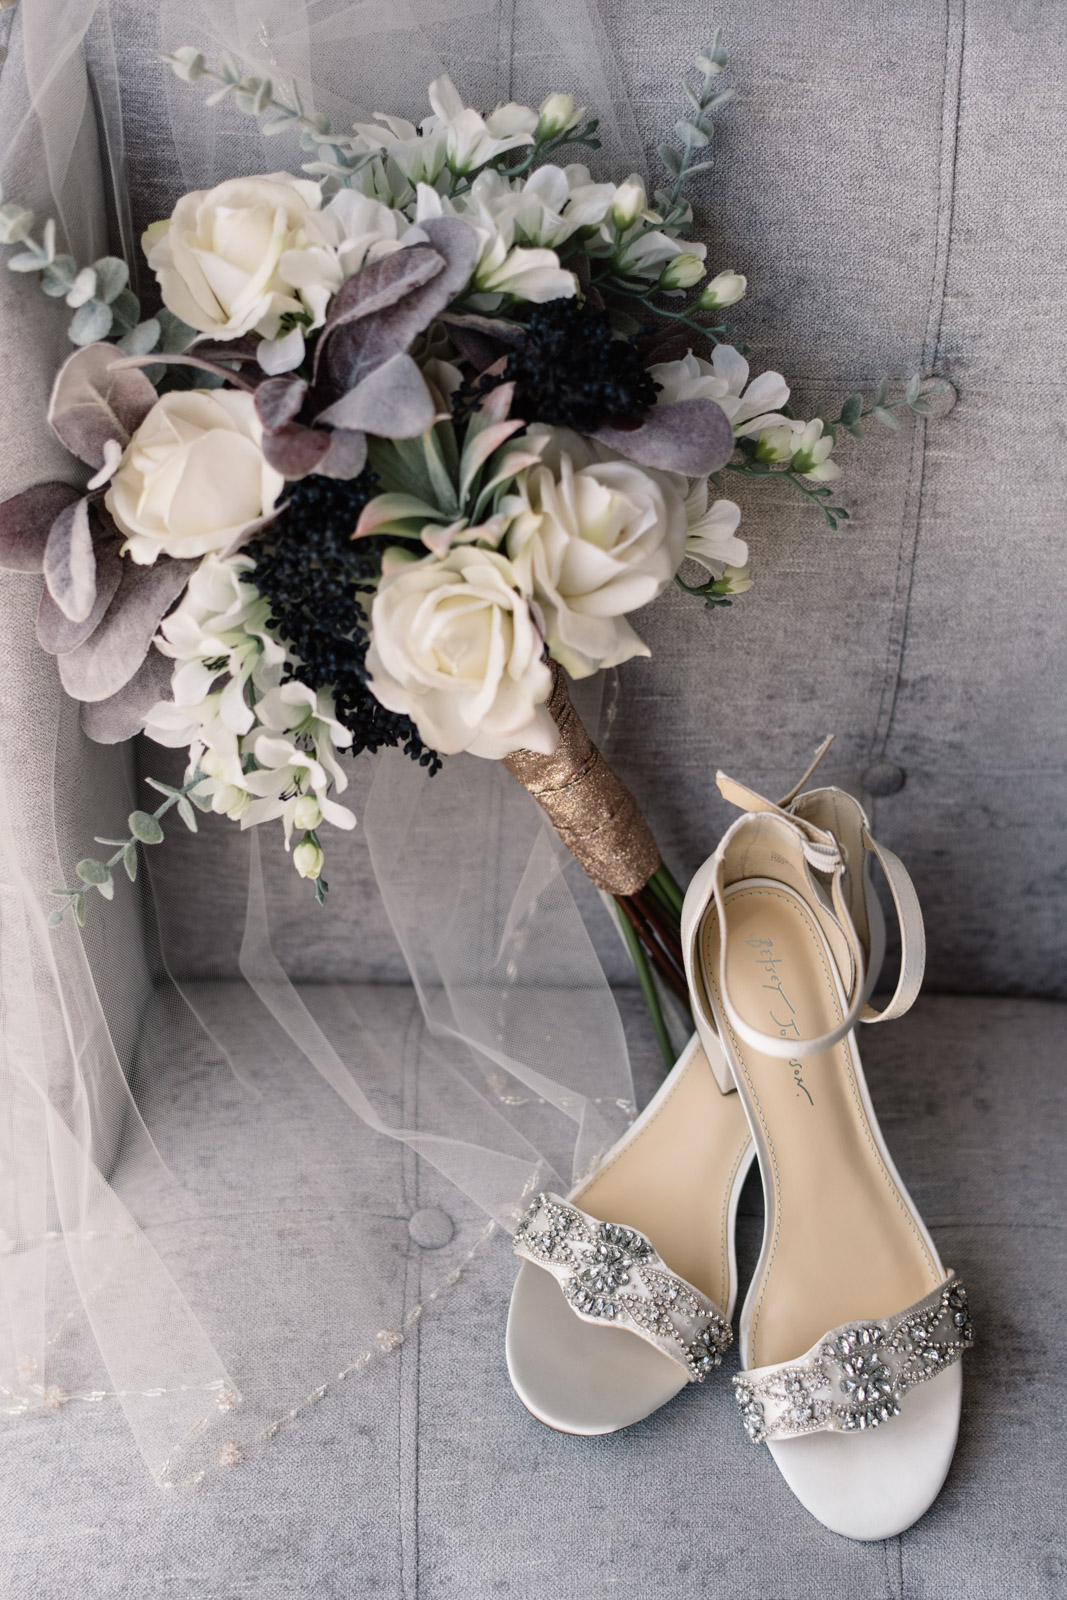 wedding shoes bouquet and veil on chair